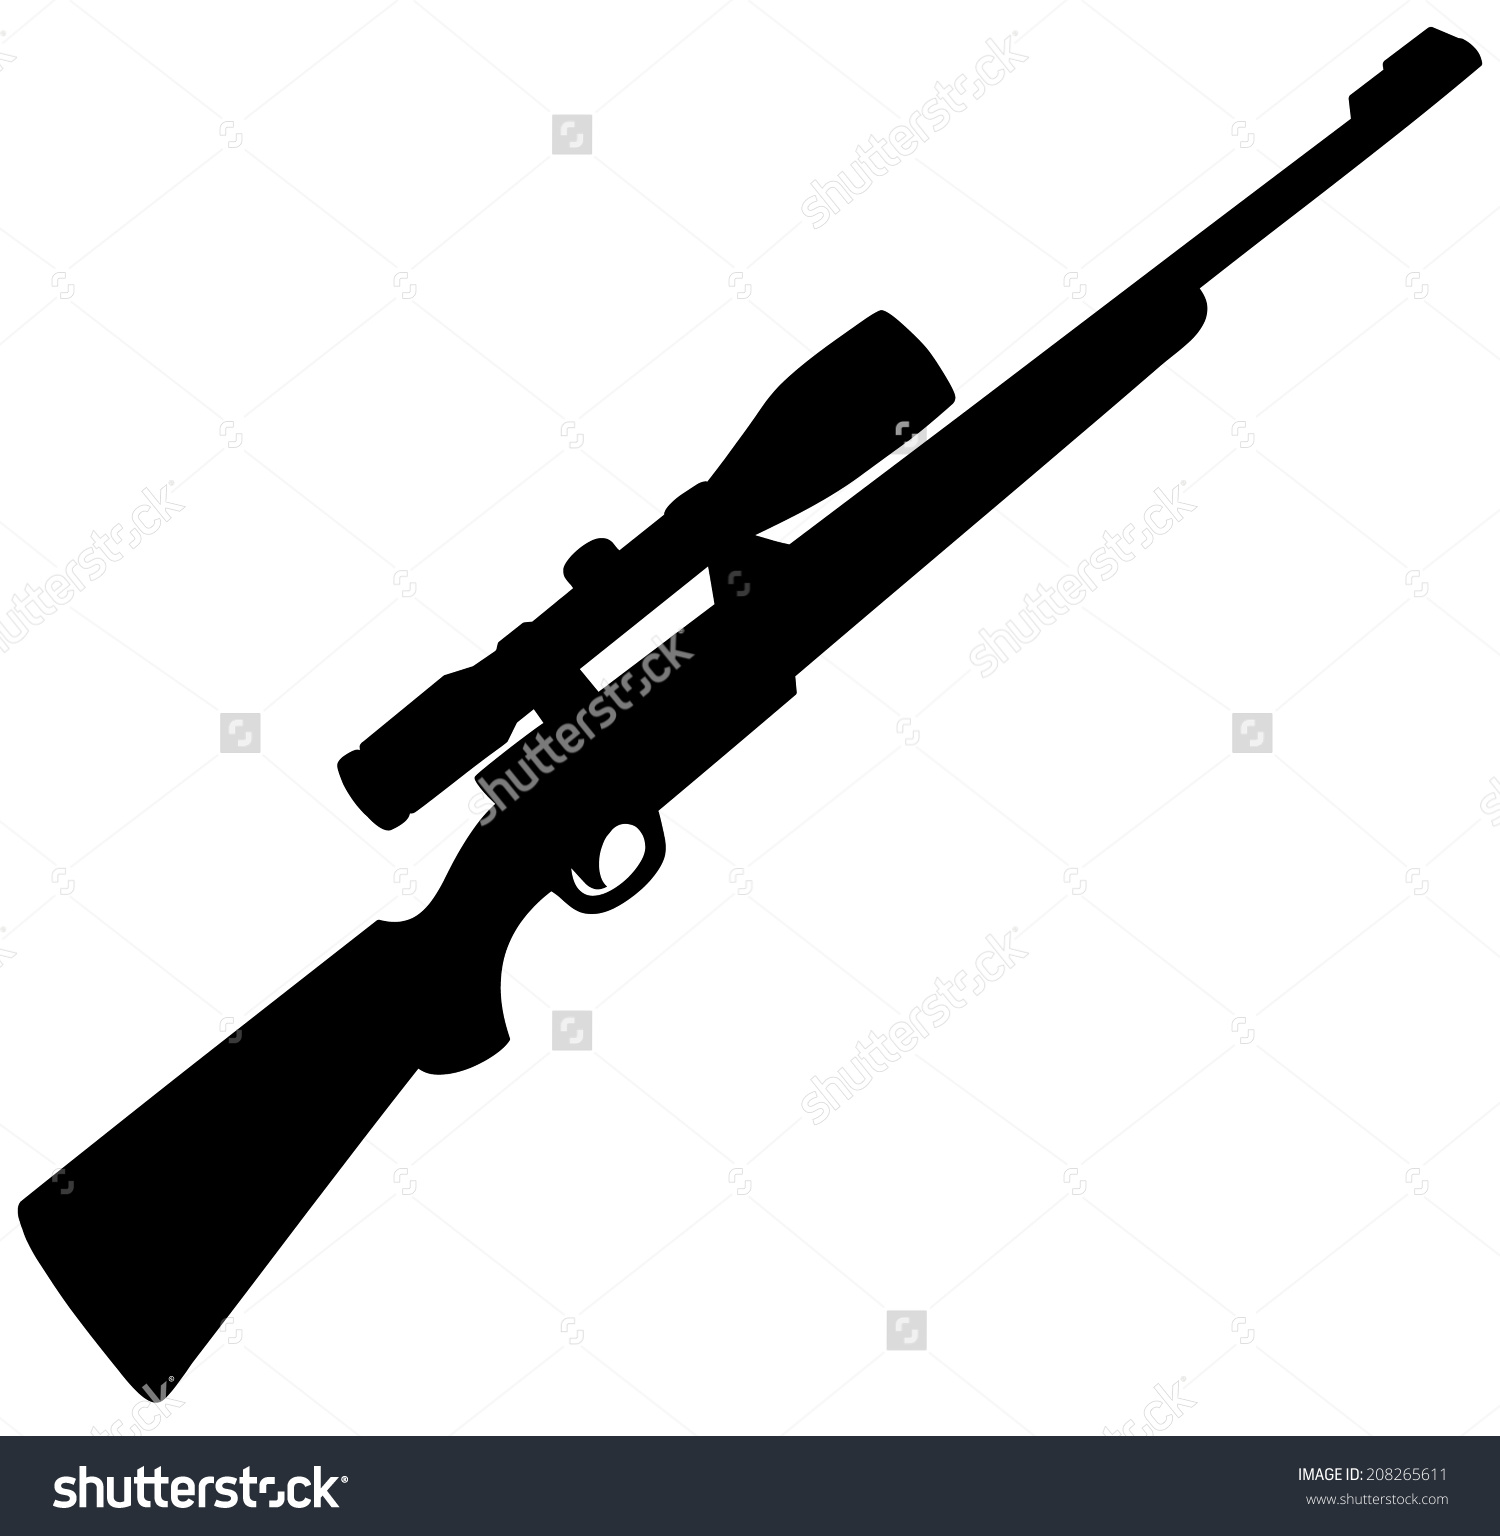 Rifle shooting clipart